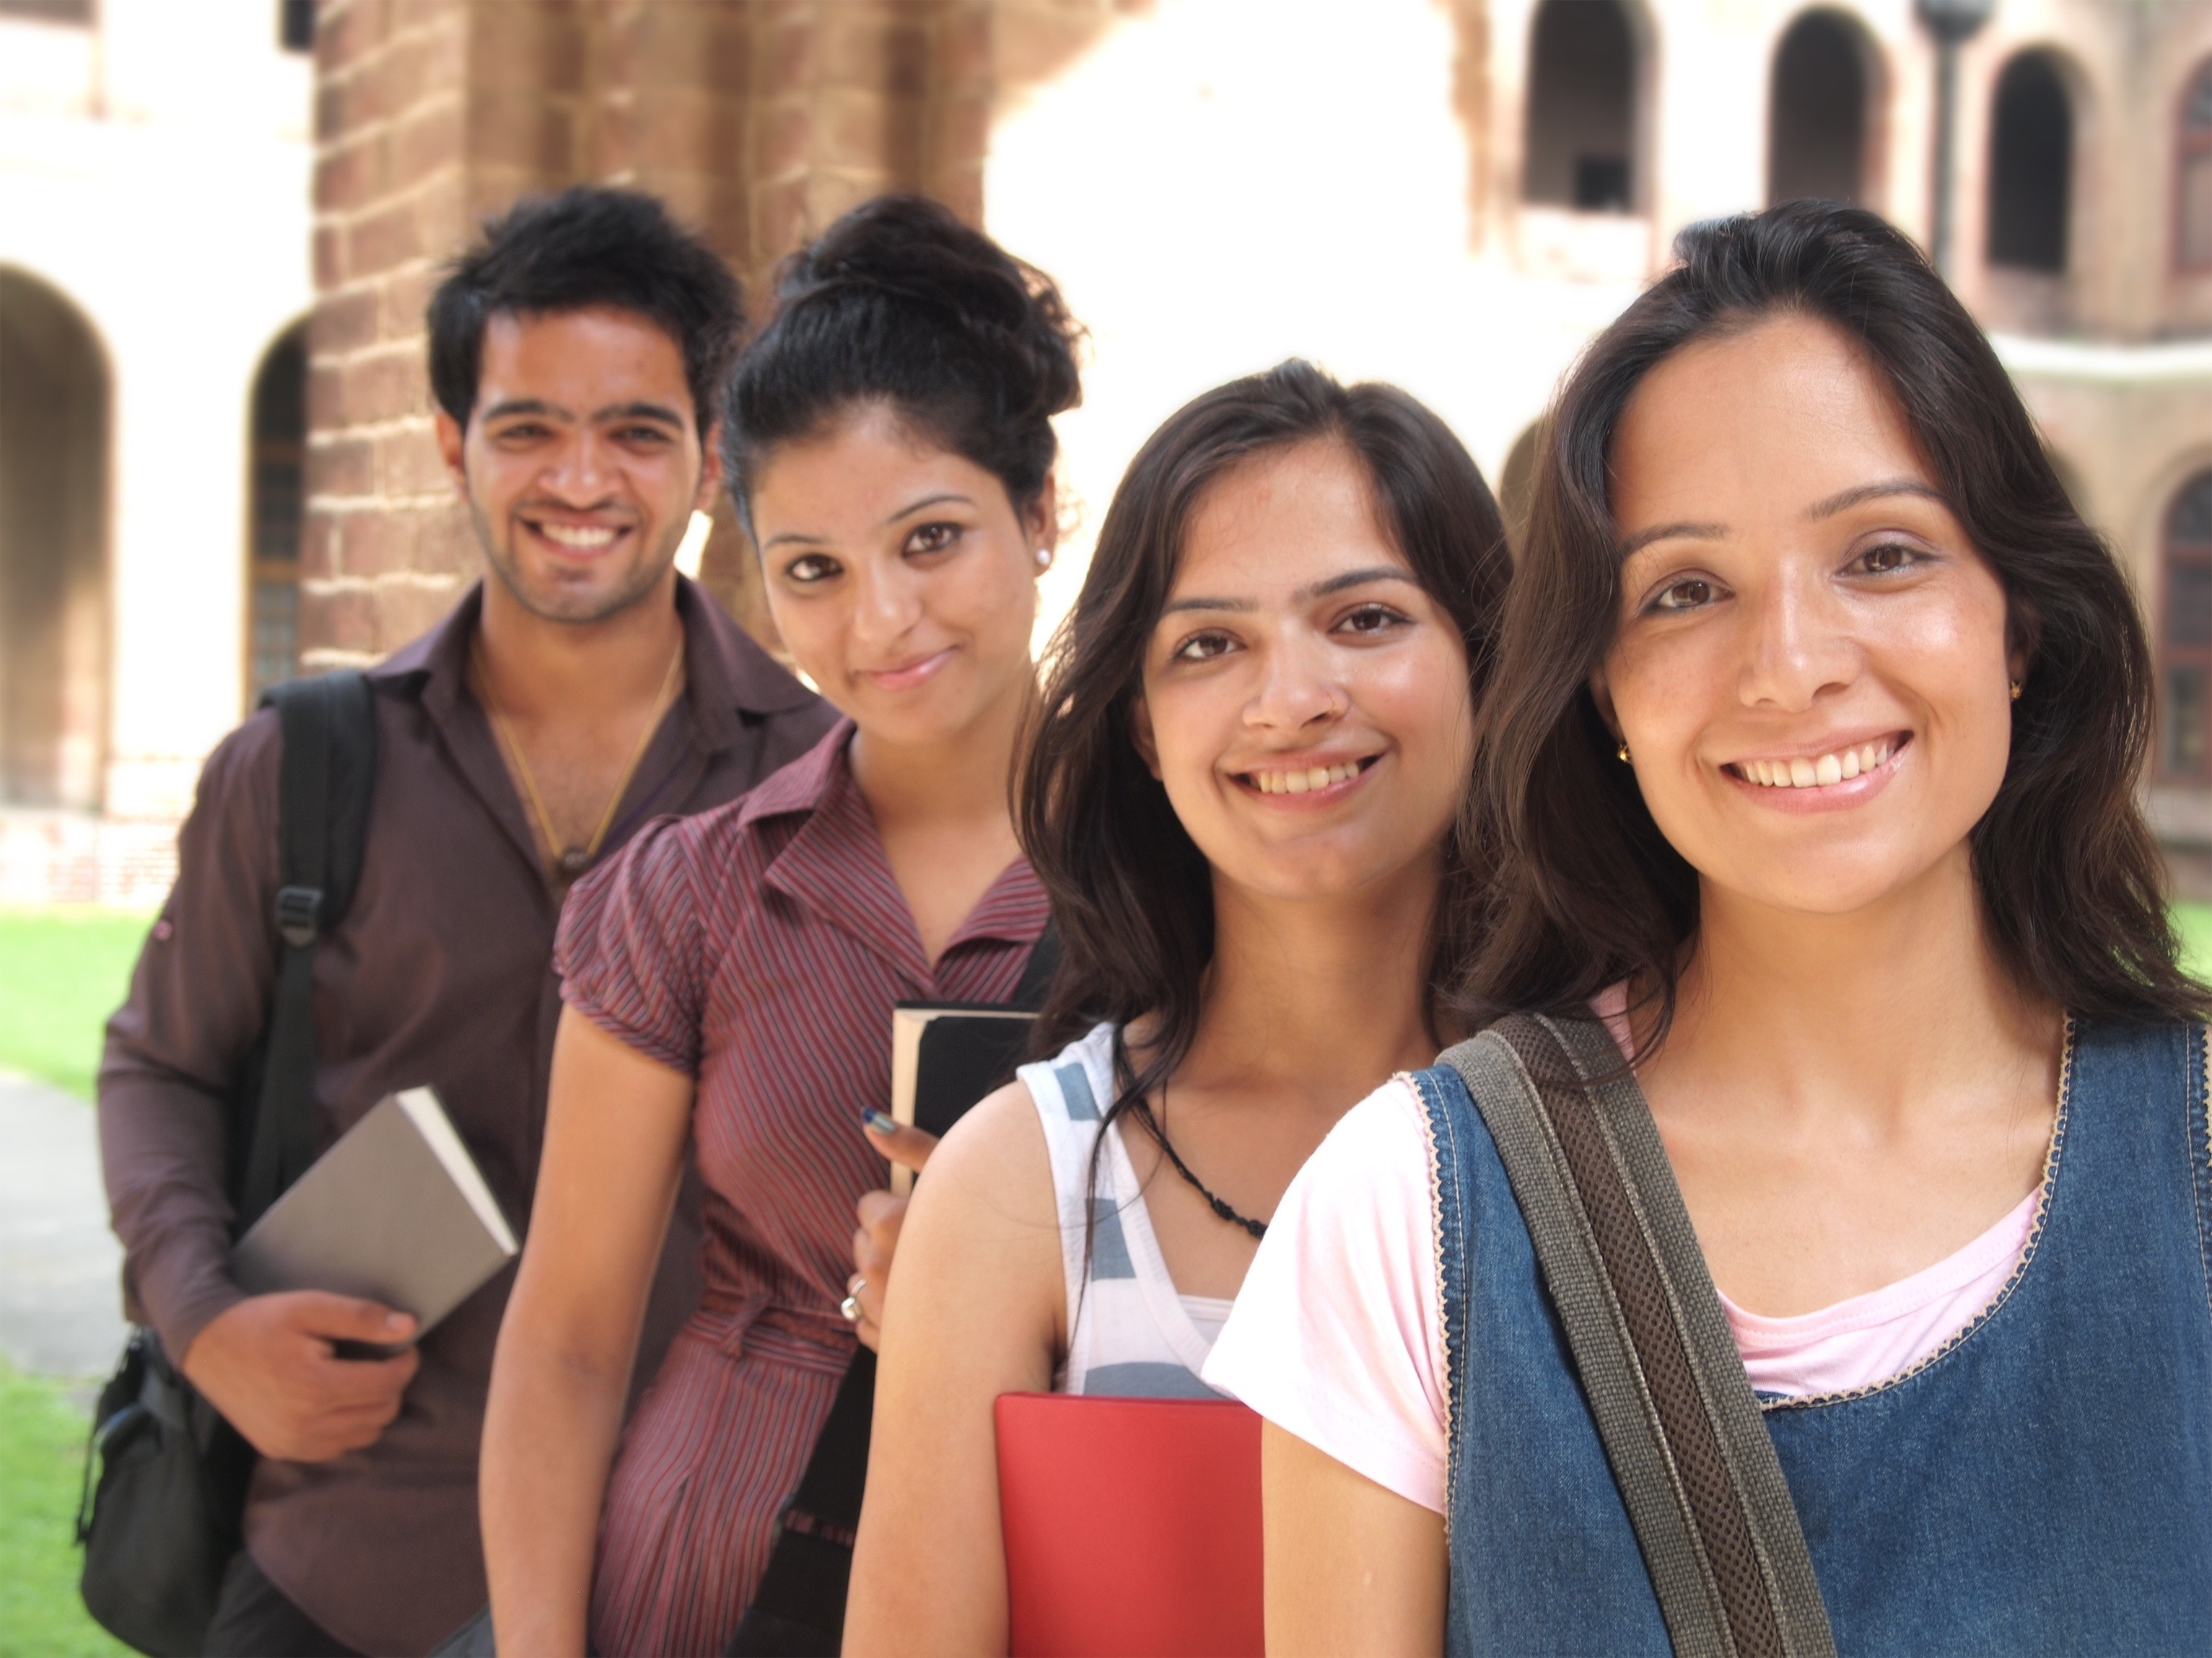 The latest figures have shown the preferred choices for students in higher education